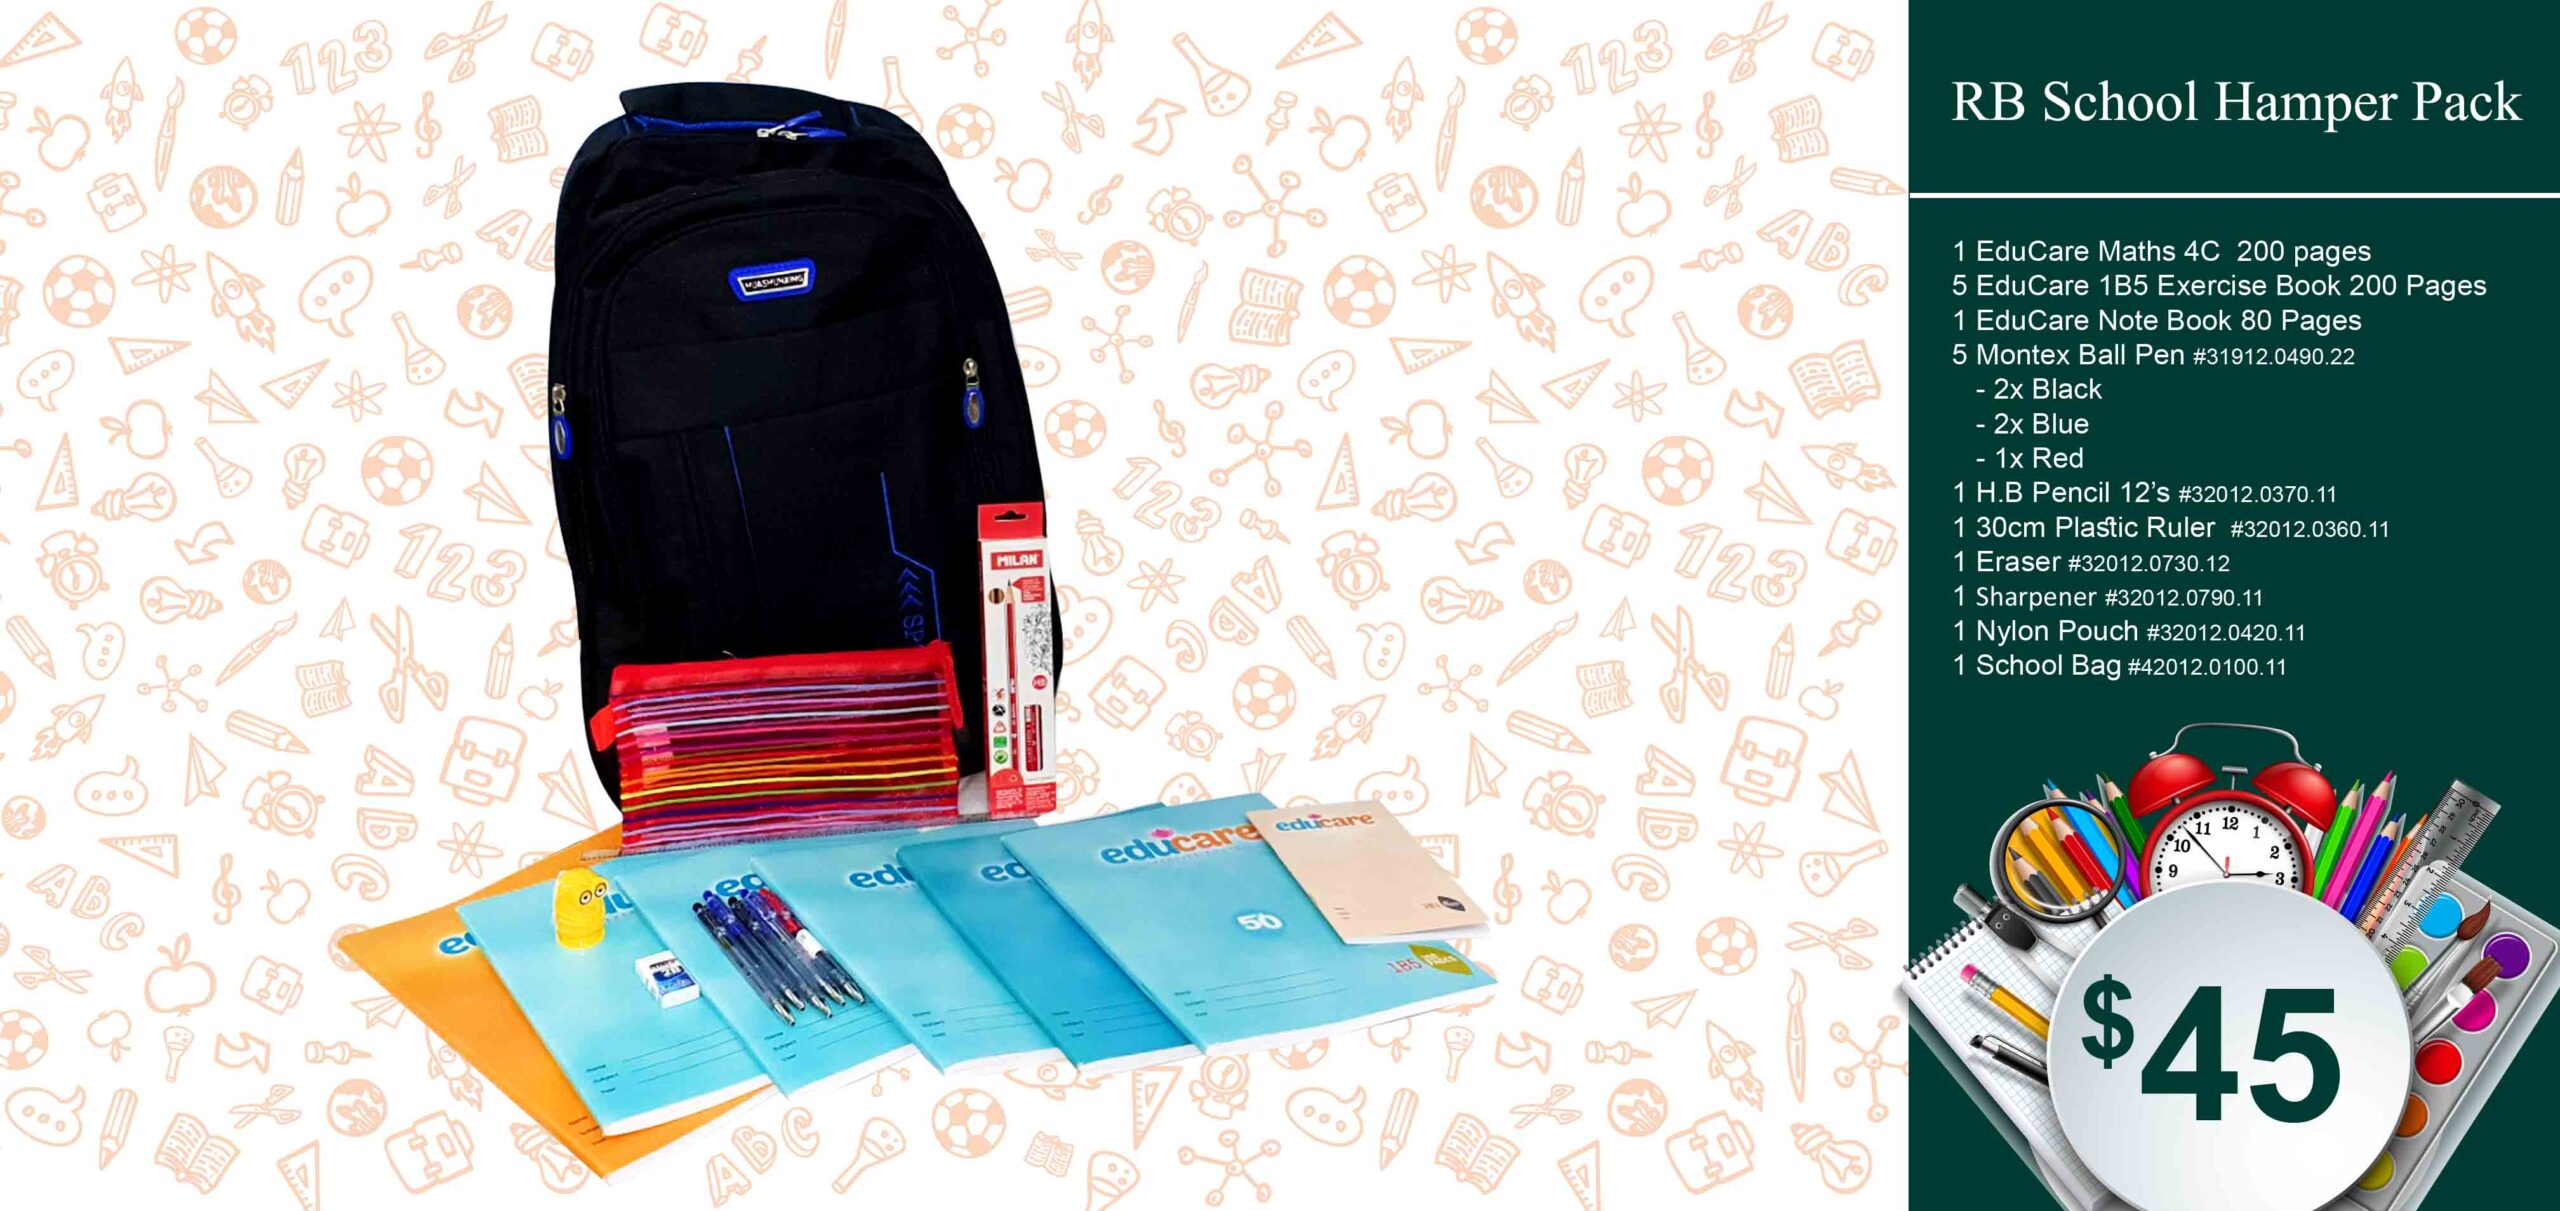 RB School Hamper Pack $45